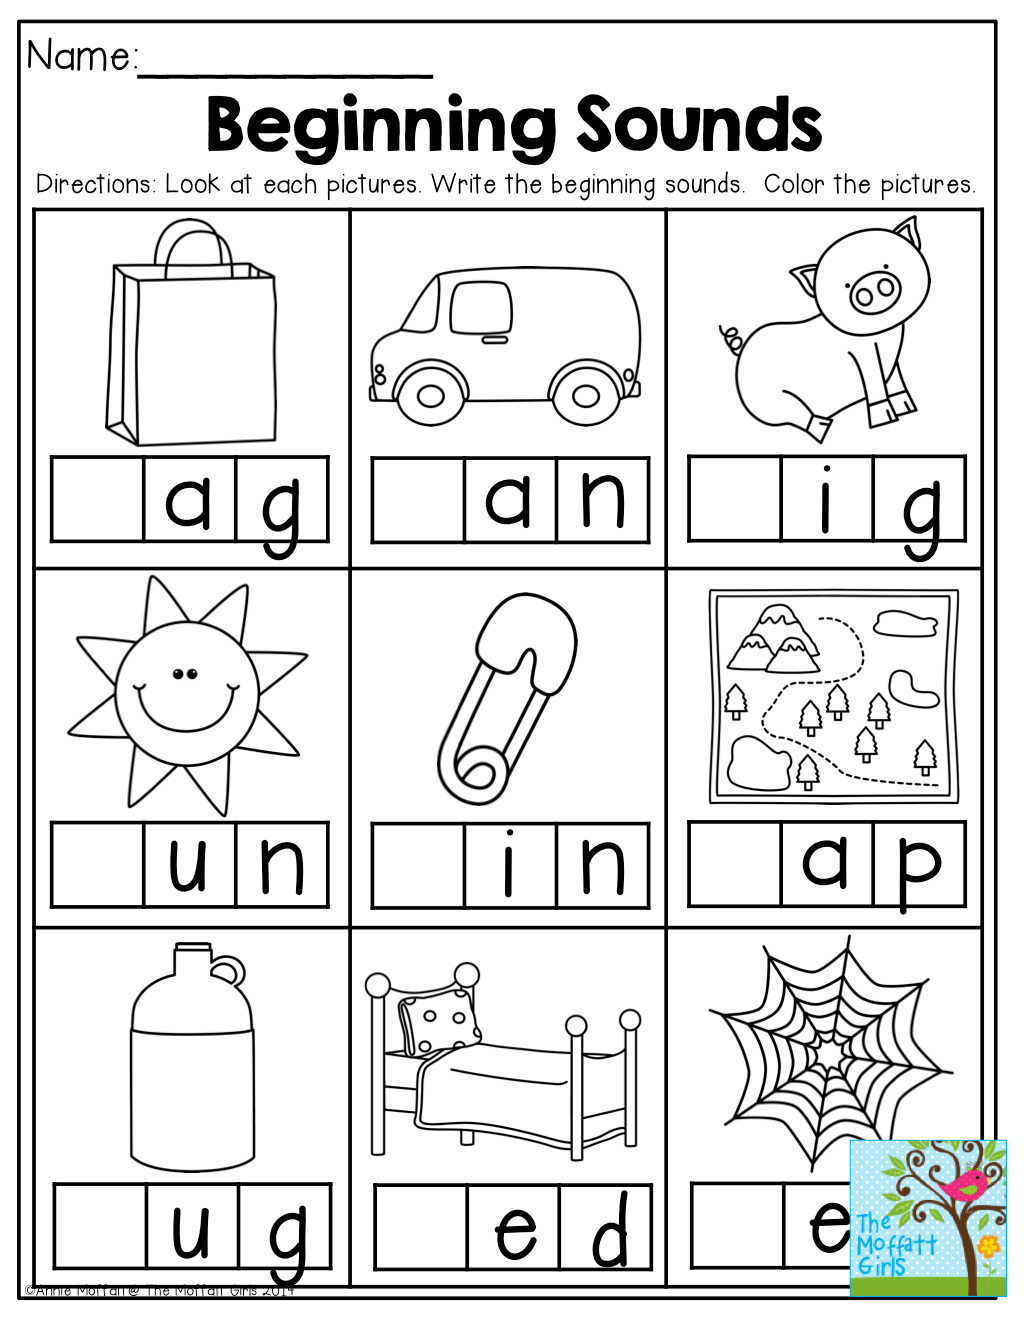 Beginning A Sounds Worksheet For Kindergarten